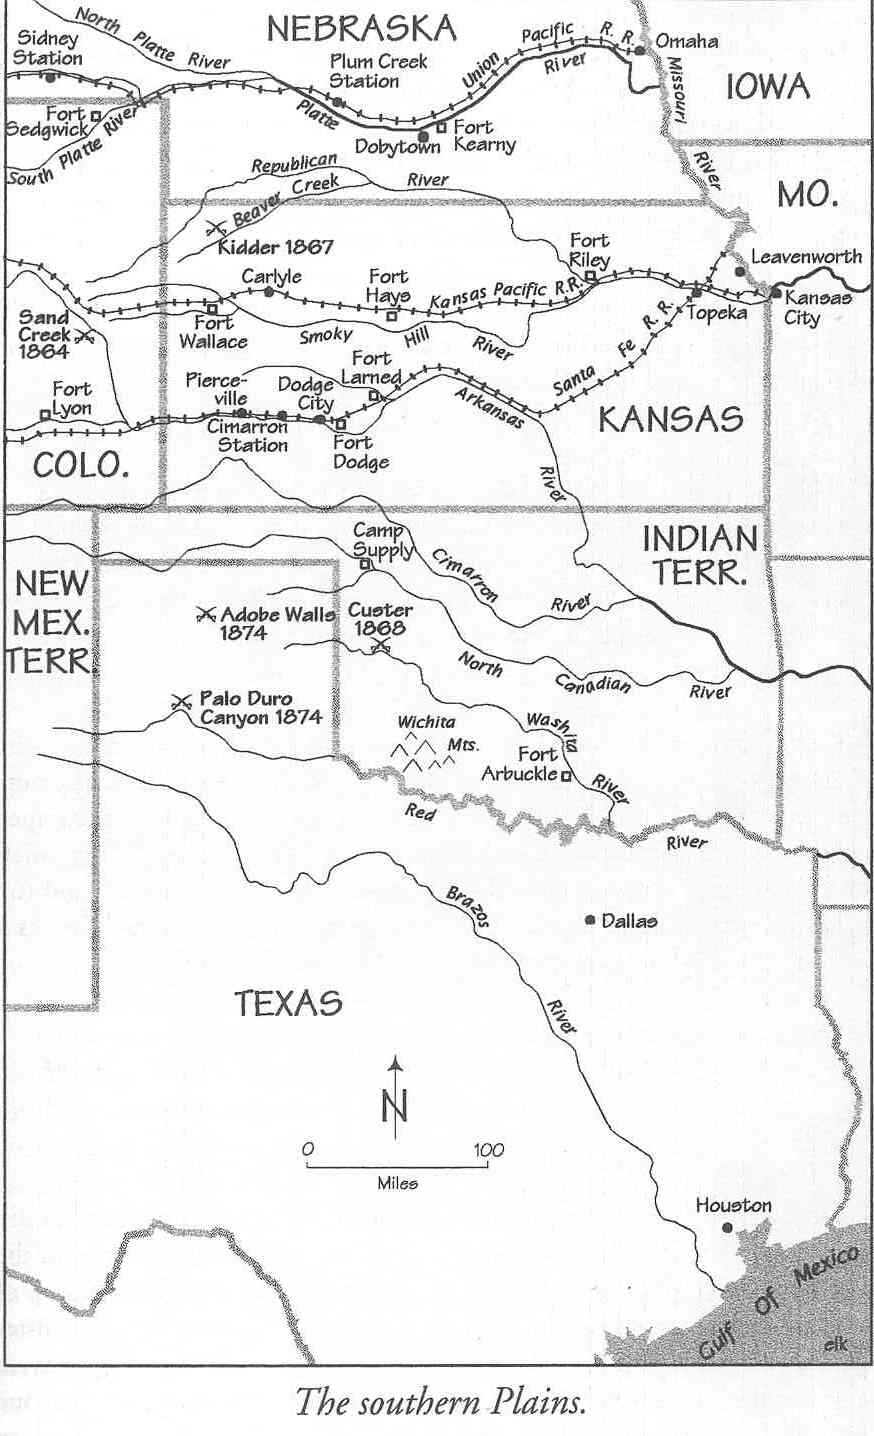 an analysis of extermination of the plains indians History edit pre-columbian edit further information: an analysis of extermination of the plains indians settlement of the americas, paleo-indians, and pre-columbian eramap showing the approximate location of the ice.